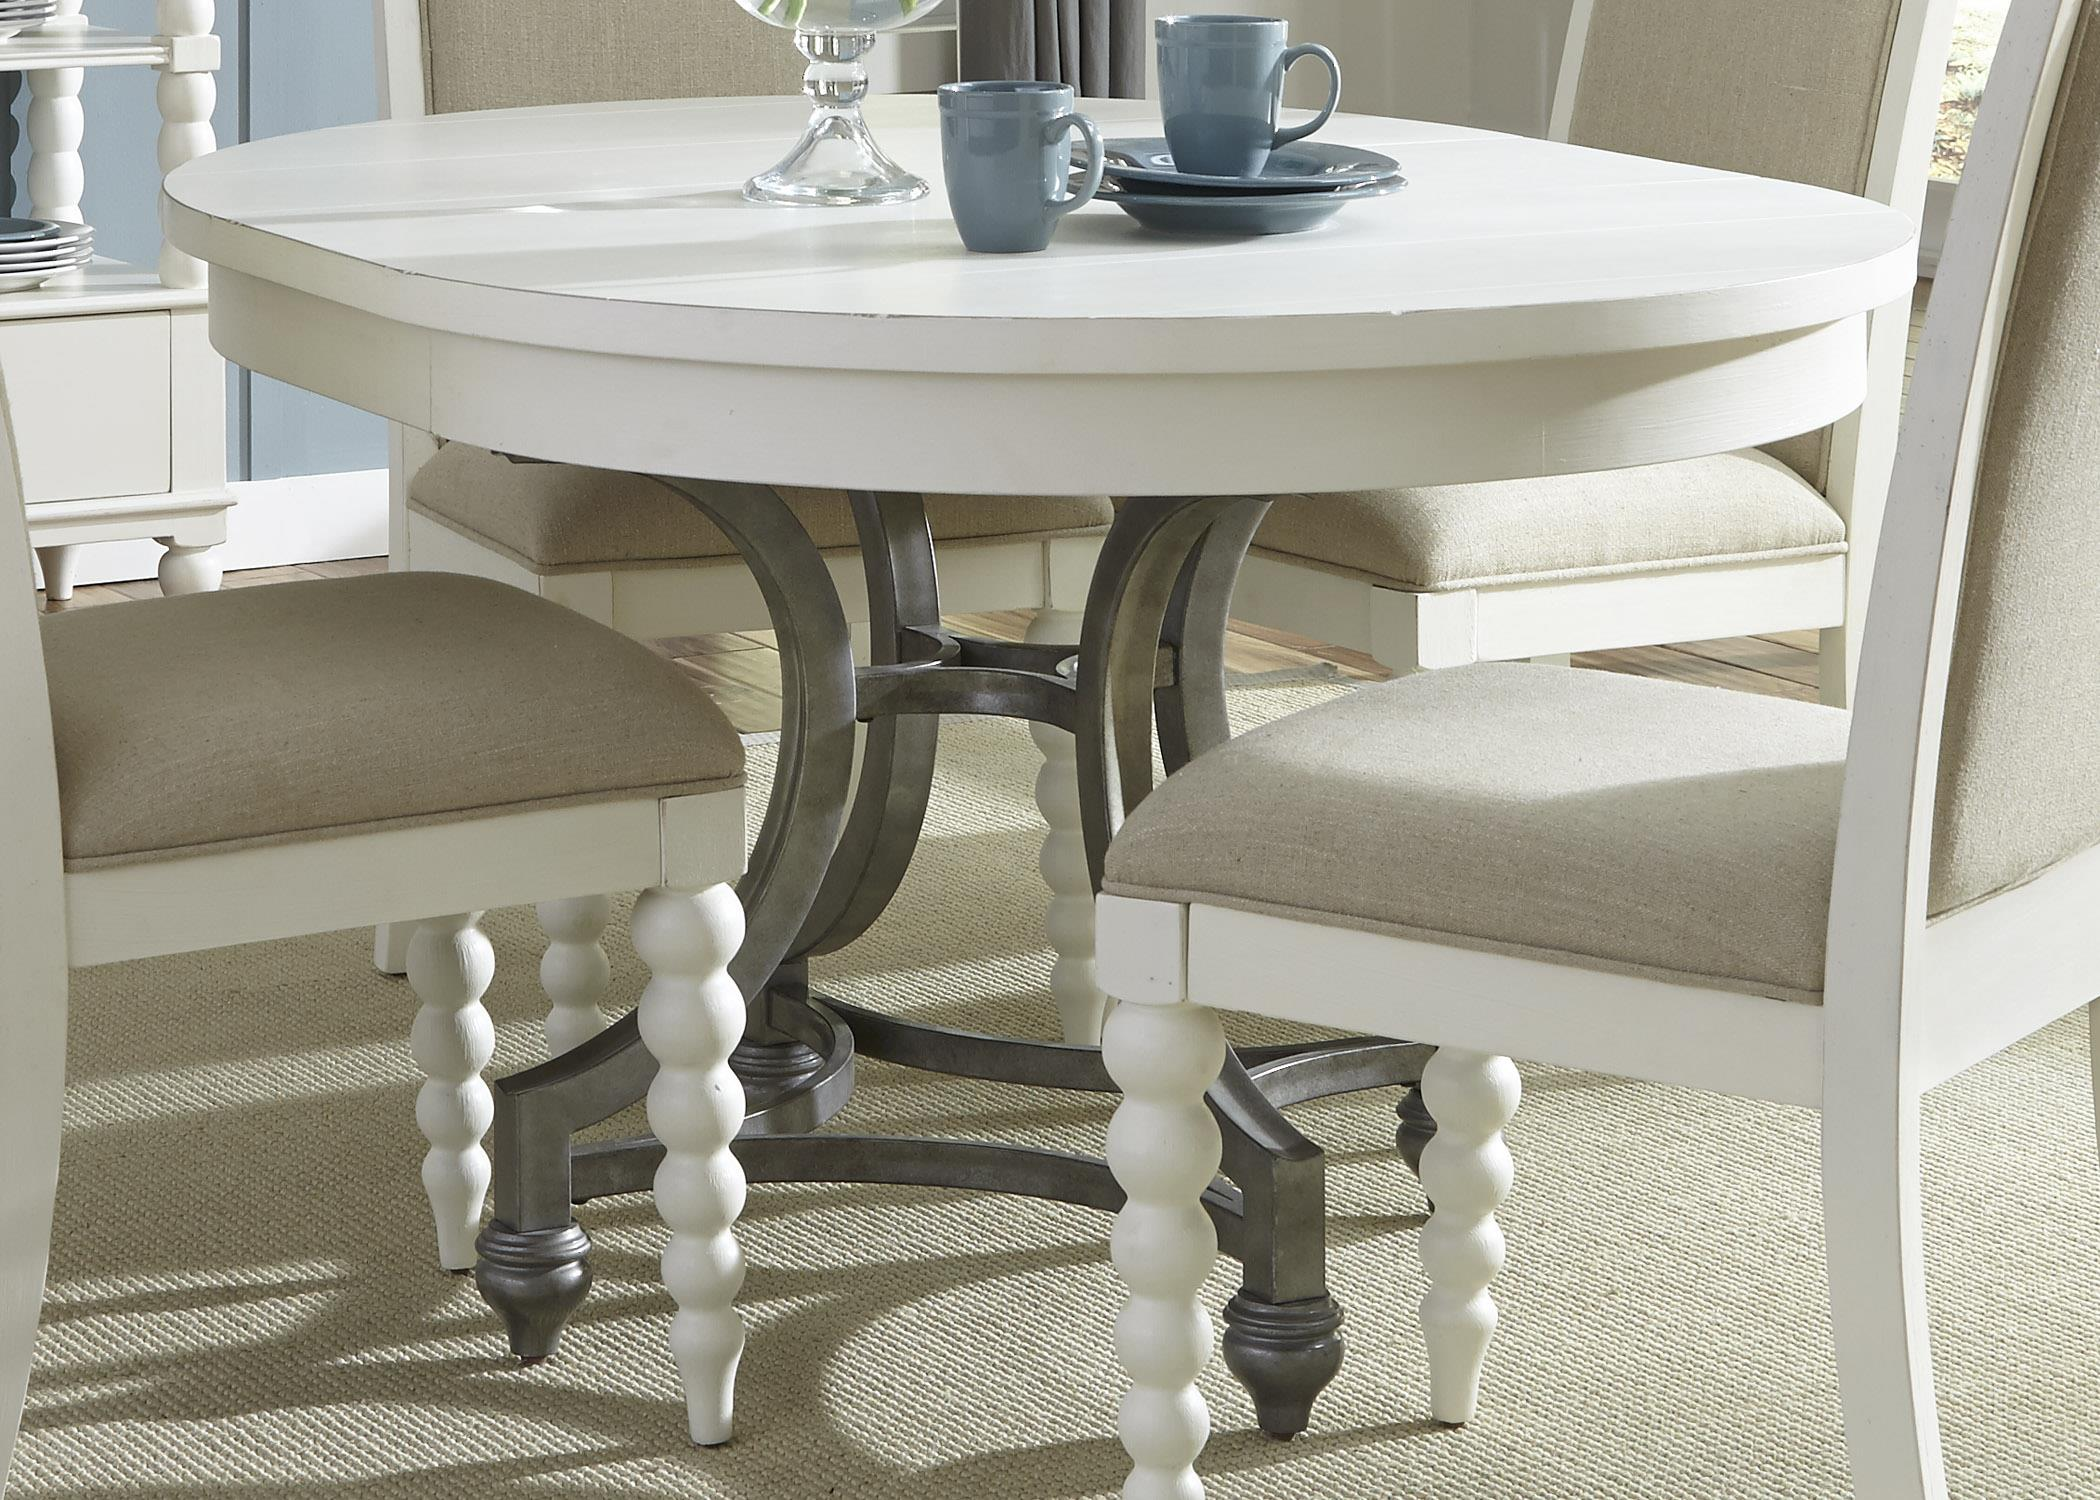 Liberty Furniture Harbor View Round Dining Table                           - Item Number: 631-T4254